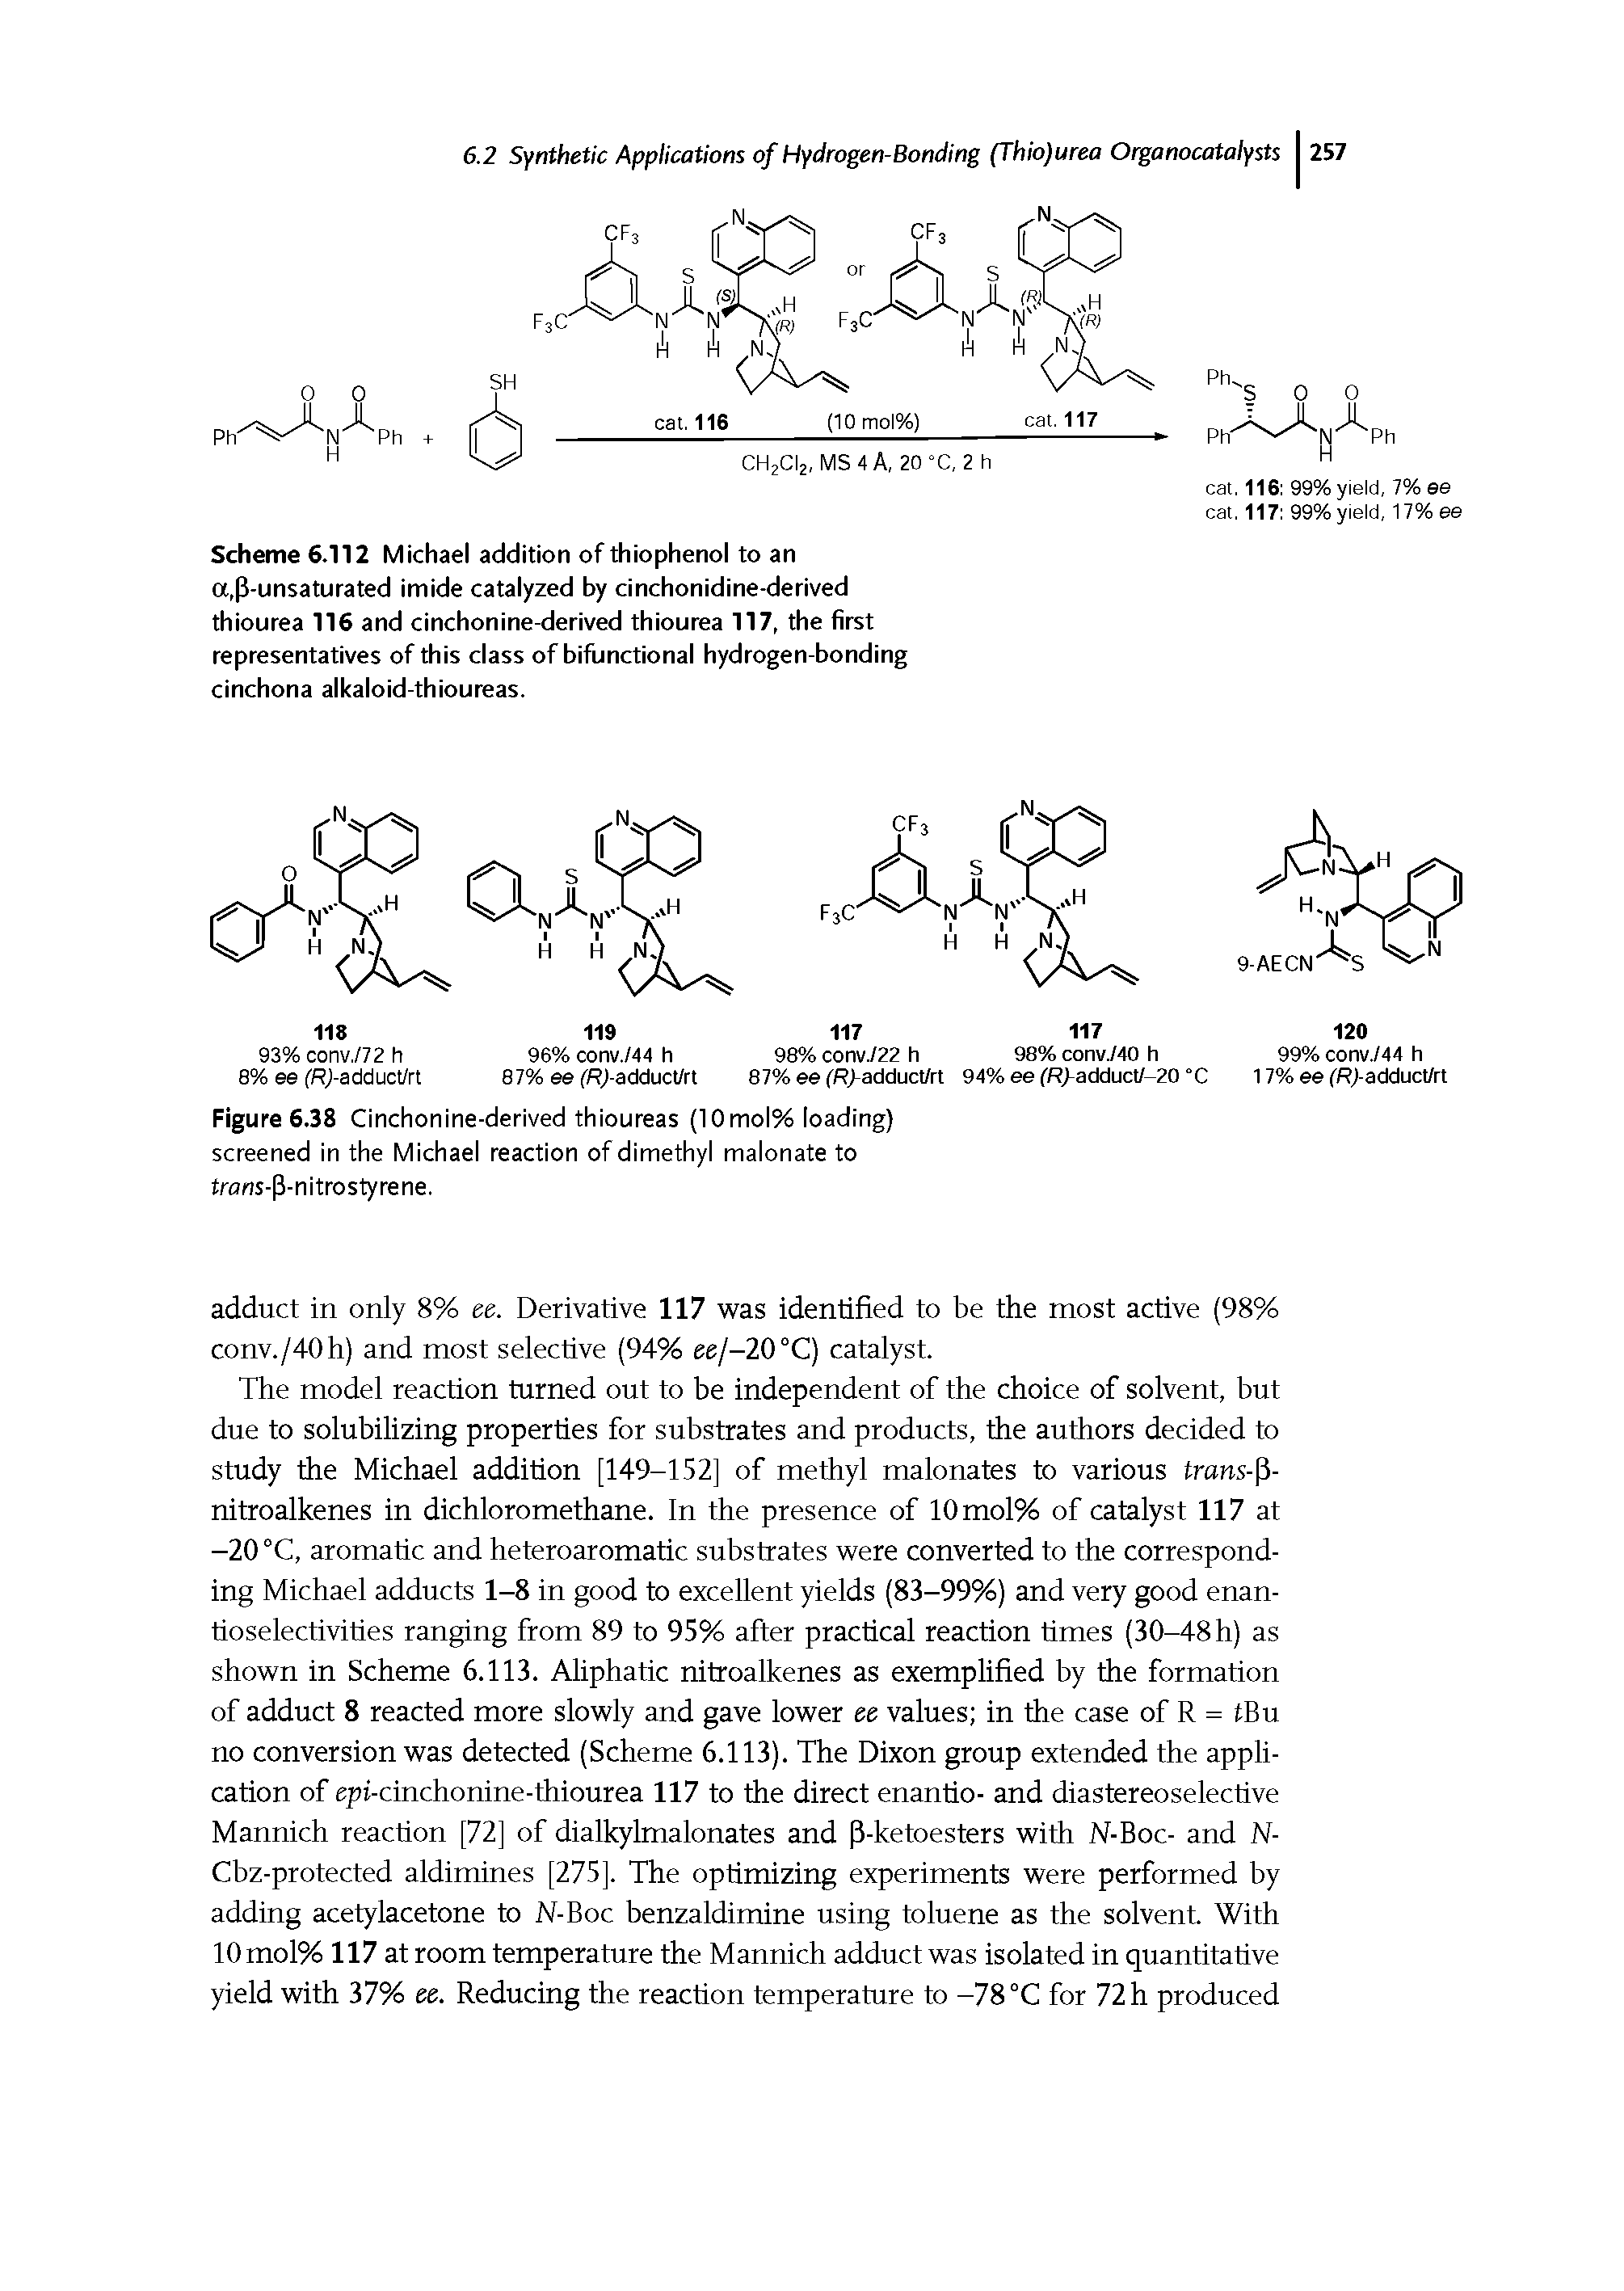 "Scheme 6.112 <a href=""/info/michael_addition"">Michael addition</a> of thiophenol to an a,p-<a href=""/info/a_p_unsaturated_imide"">unsaturated imide</a> catalyzed by <a href=""/info/cinchonidine_derived_thioureas"">cinchonidine-derived thiourea</a> 116 and <a href=""/info/cinchonine_derived_thioureas"">cinchonine-derived thiourea</a> 117, the first representatives of this class of bifunctional <a href=""/info/hydrogen_bonding"">hydrogen-bonding</a> <a href=""/info/cinchona_alkaloids"">cinchona alkaloid</a>-thioureas."